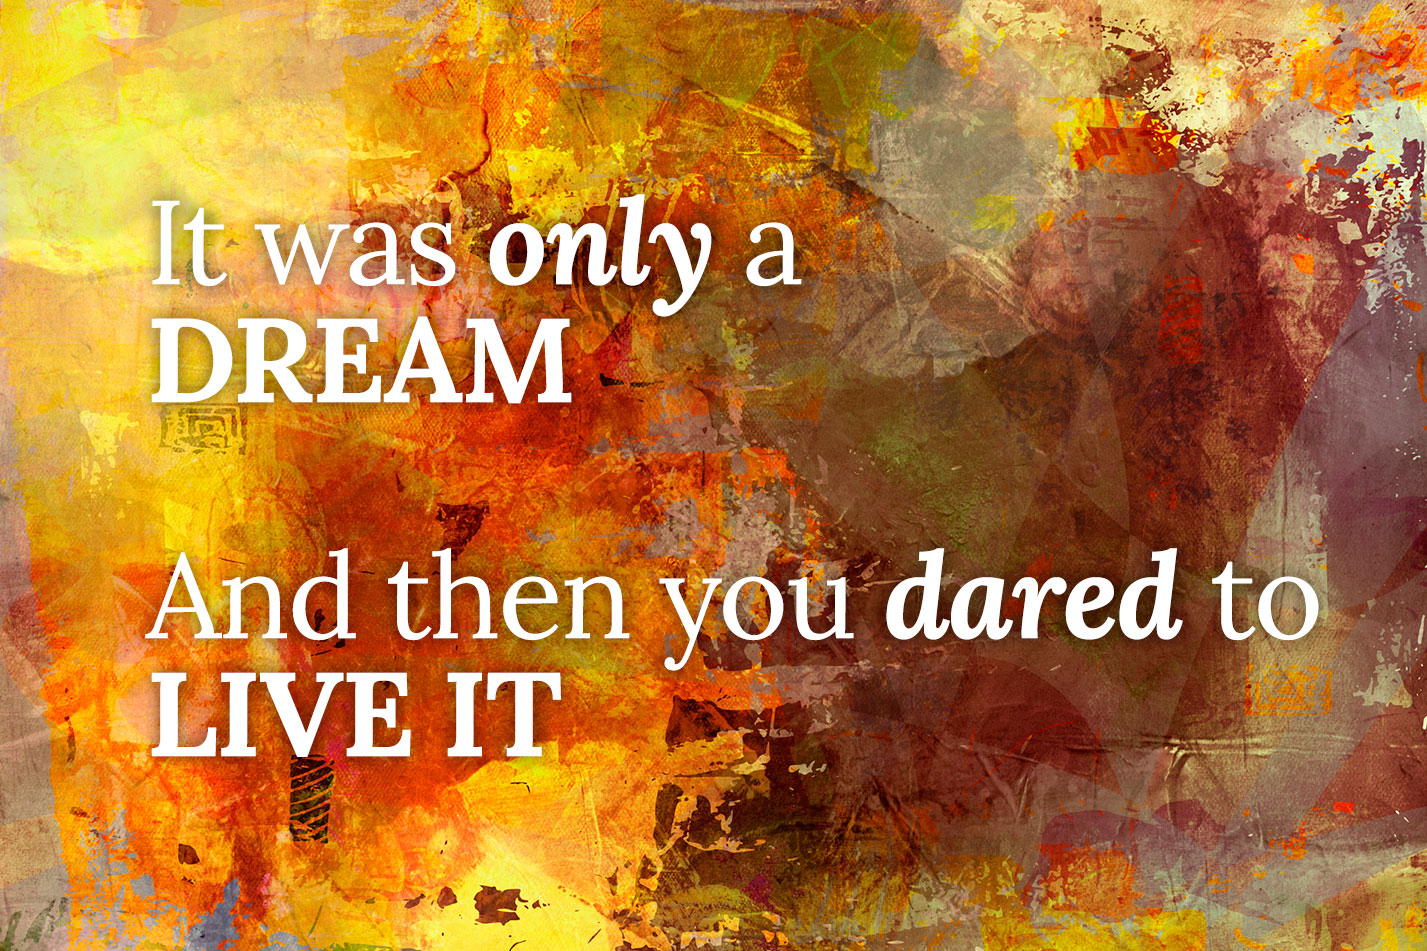 Quote - It was only a dream. And then you dared to Live it.